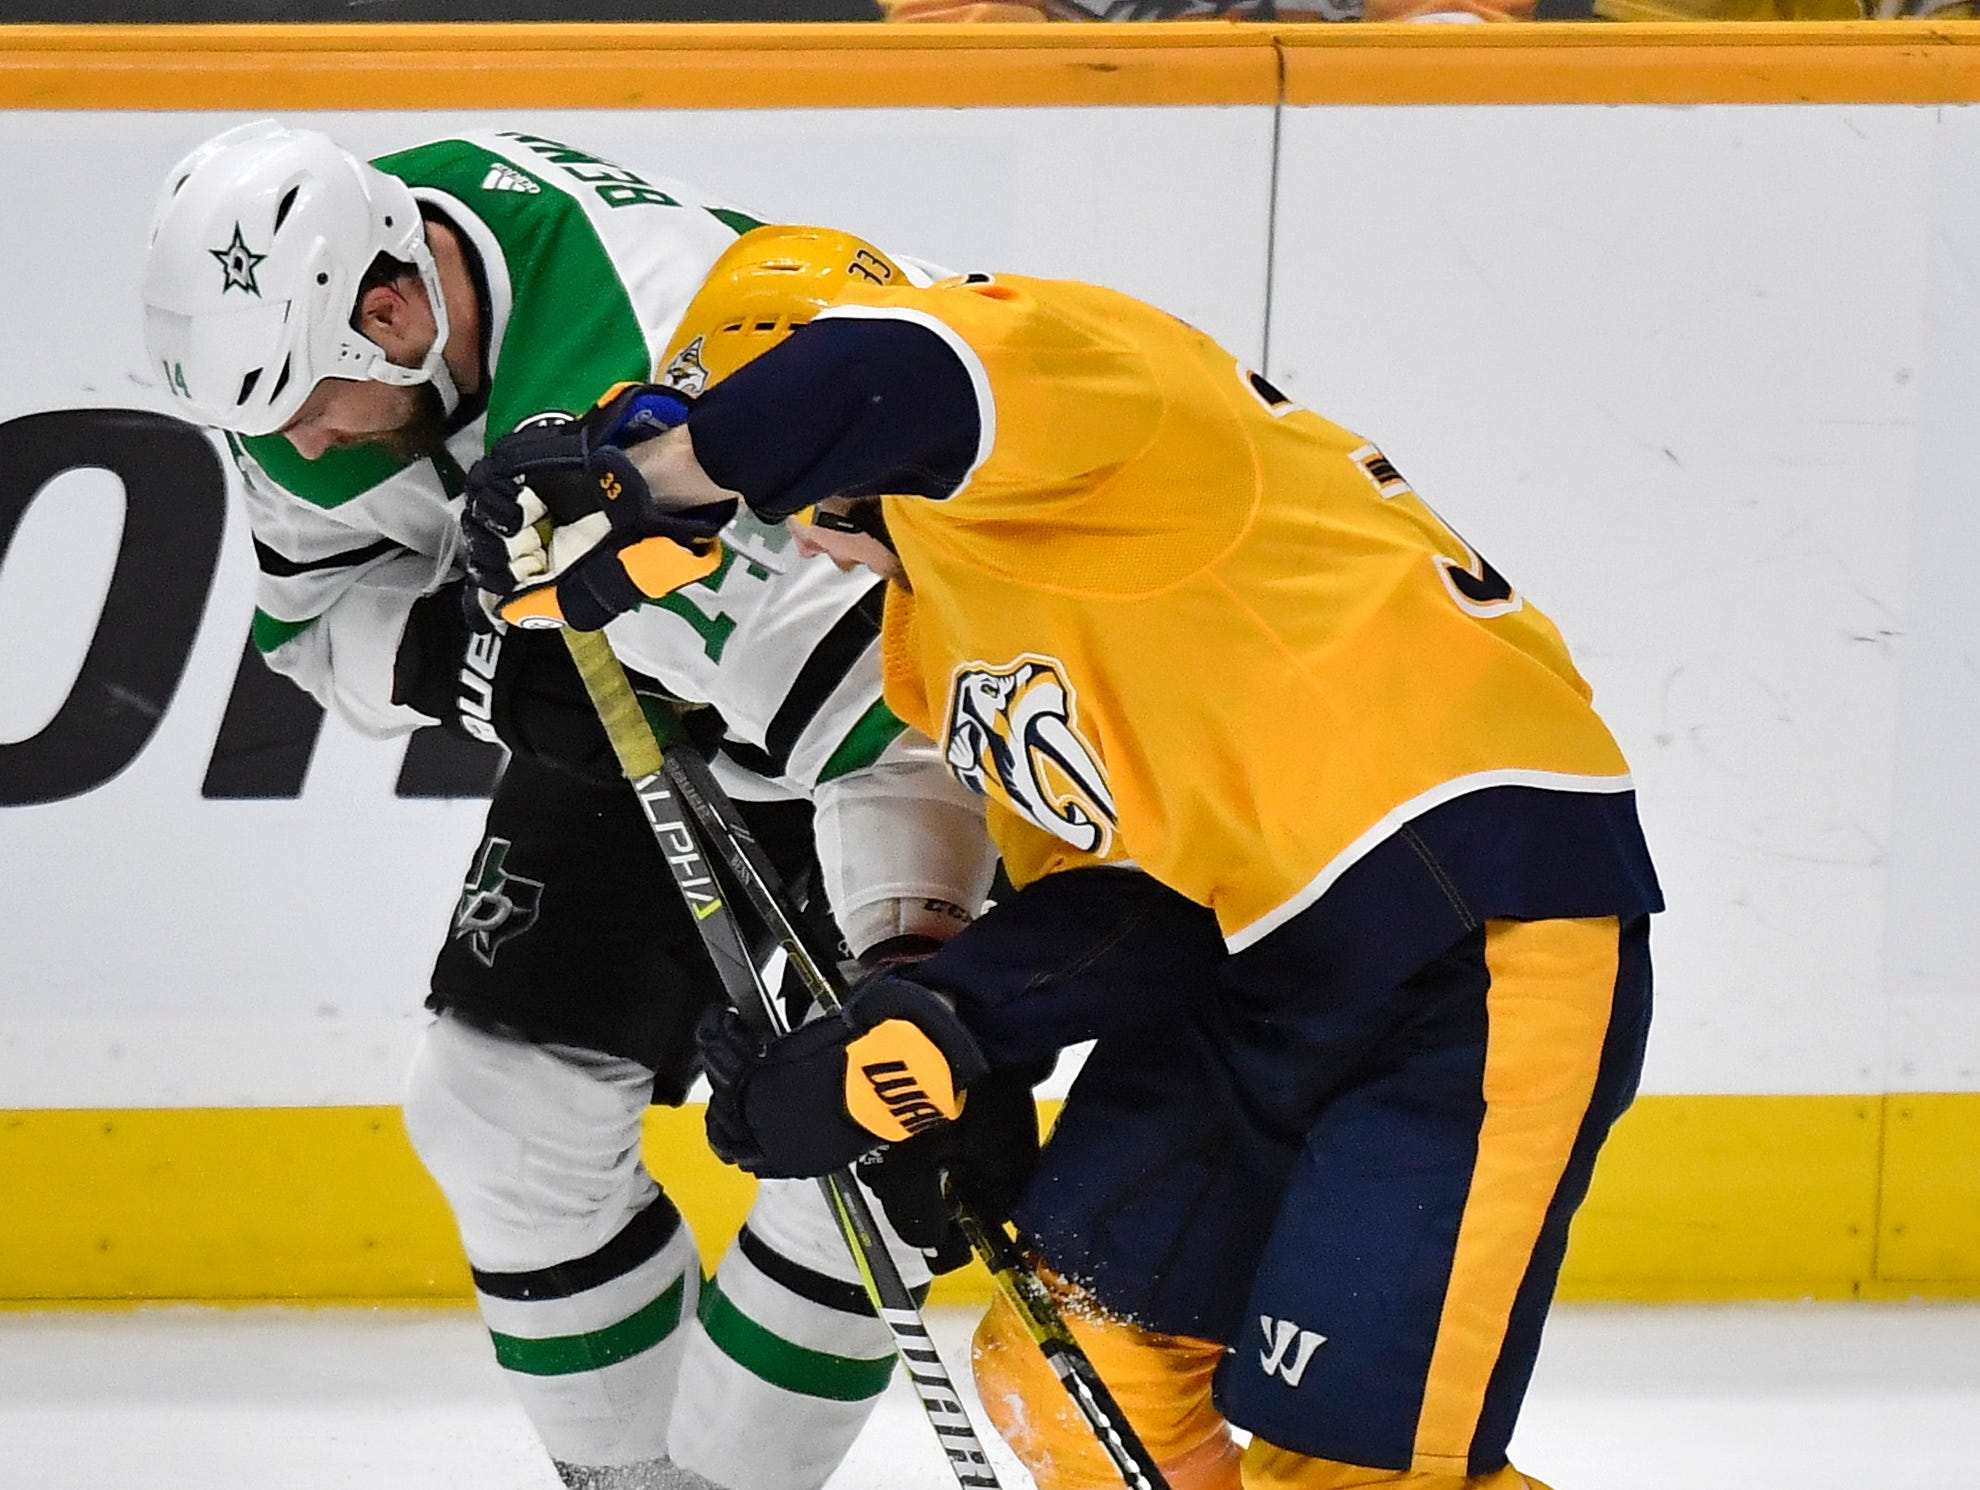 Nashville Predators right wing Viktor Arvidsson (33) and Dallas Stars left wing Jamie Benn (14) battle for the puck during the second period of the divisional semifinal game at Bridgestone Arena in Nashville, Tenn., Saturday, April 13, 2019.